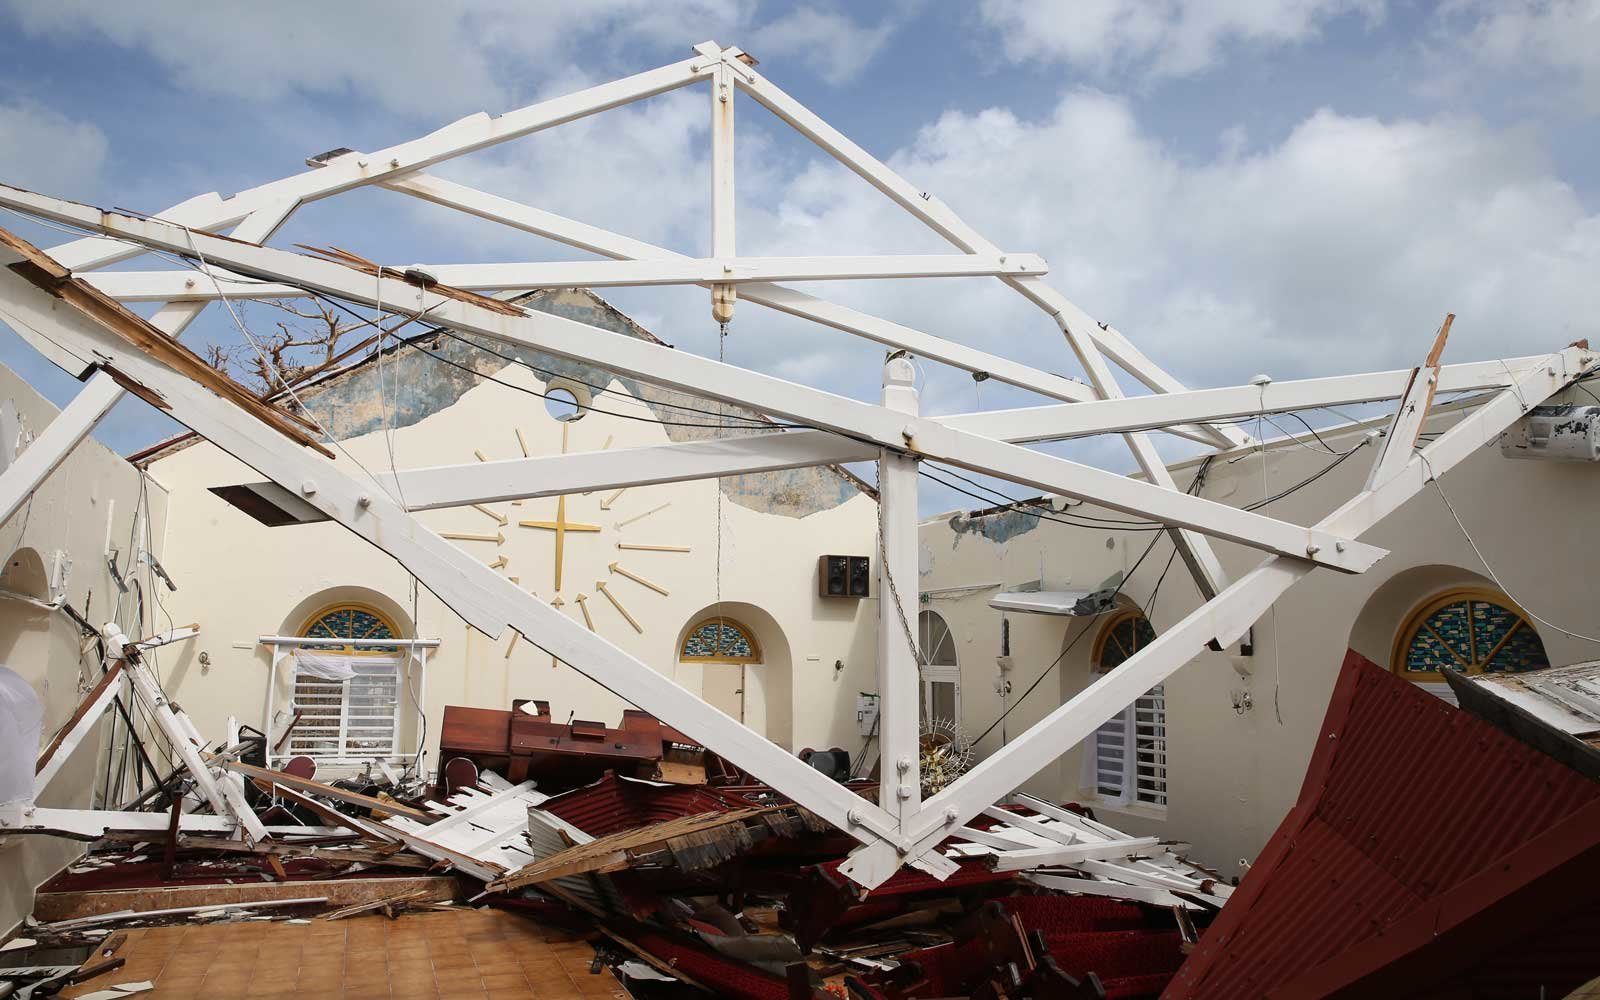 View of the destroyed Methodist church in Marigot, Saint Maarten days after this Caribbean island sustained extensive damage after the passing of Hurricane Irma on September 12, 2017